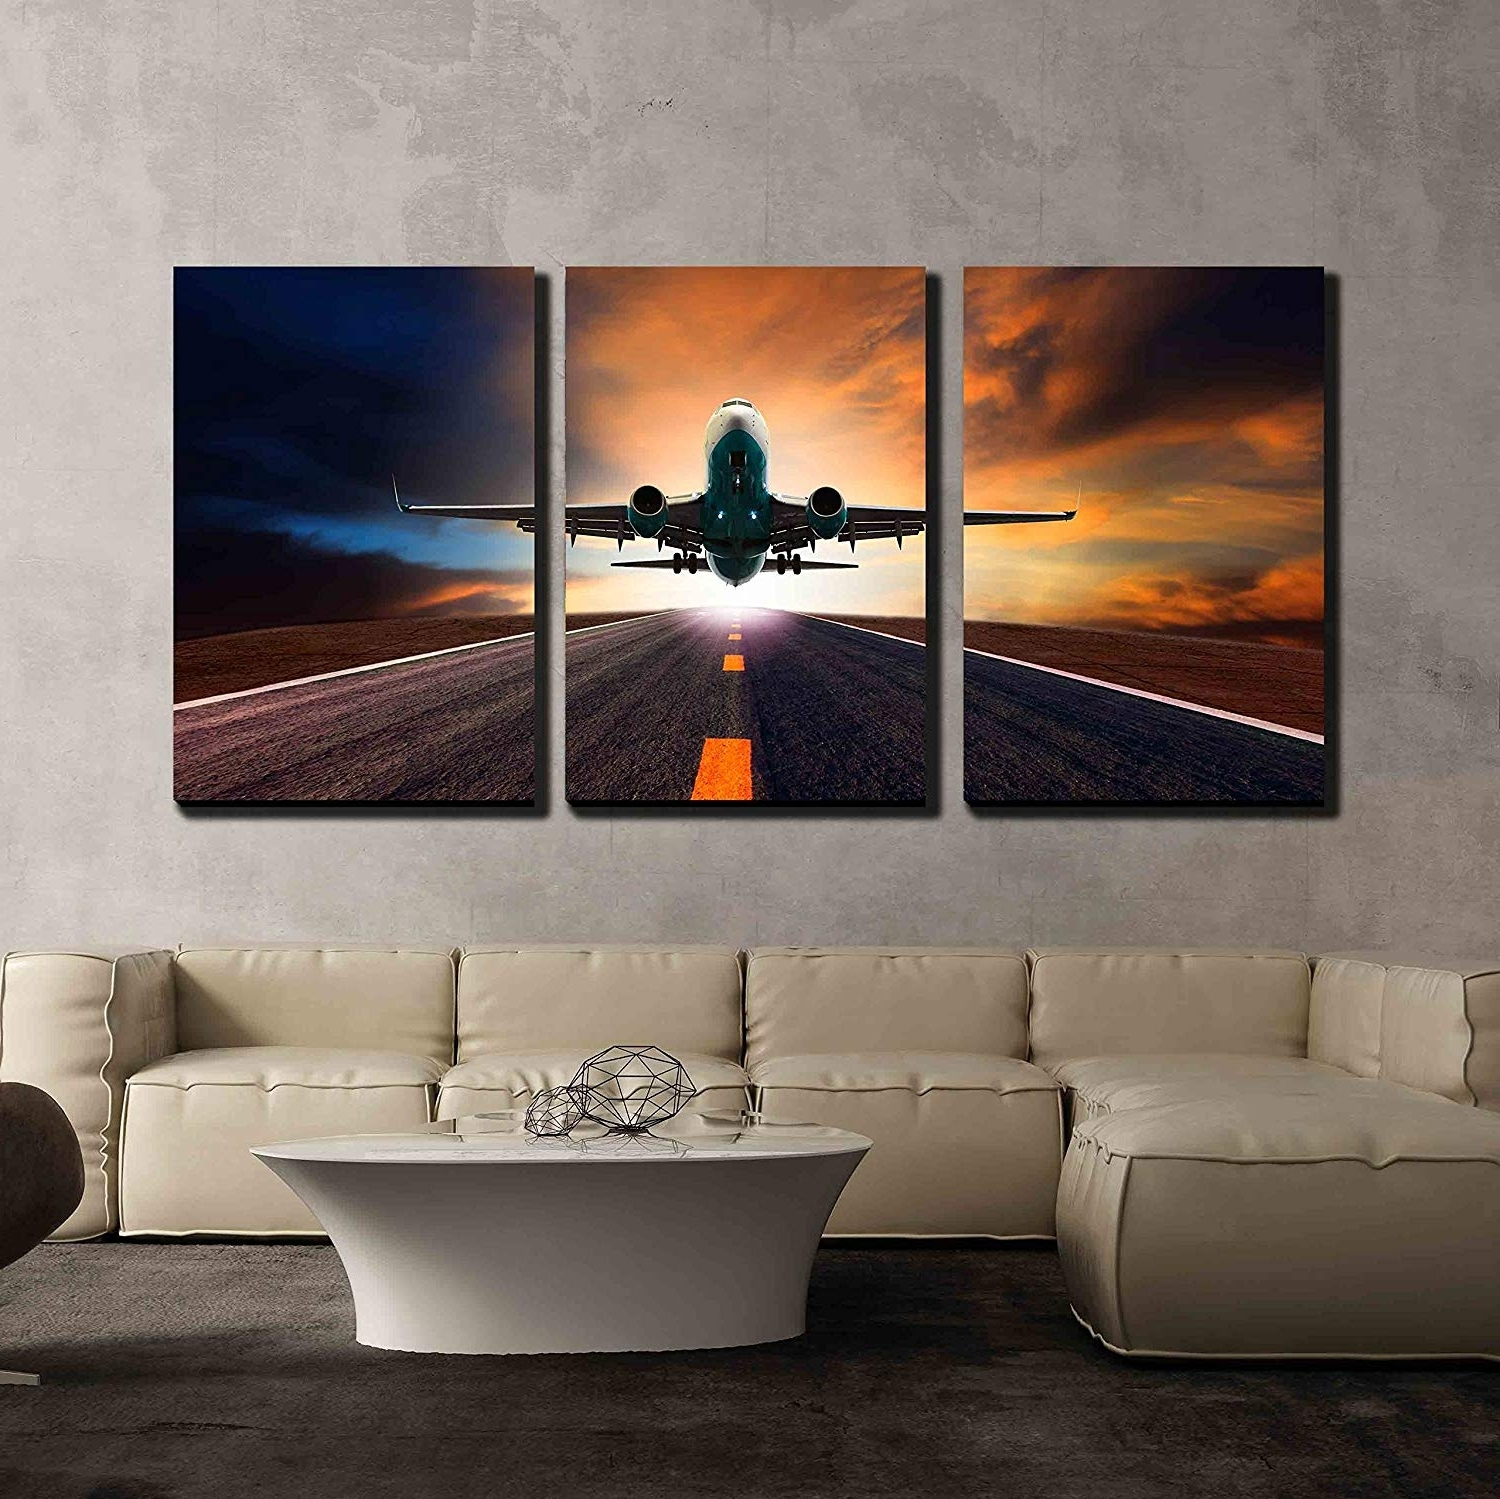 Most Current Airplane Wall Art With Regard To Amazon: Wall26 – 3 Piece Canvas Wall Art – Passenger Jet Plane (View 10 of 15)